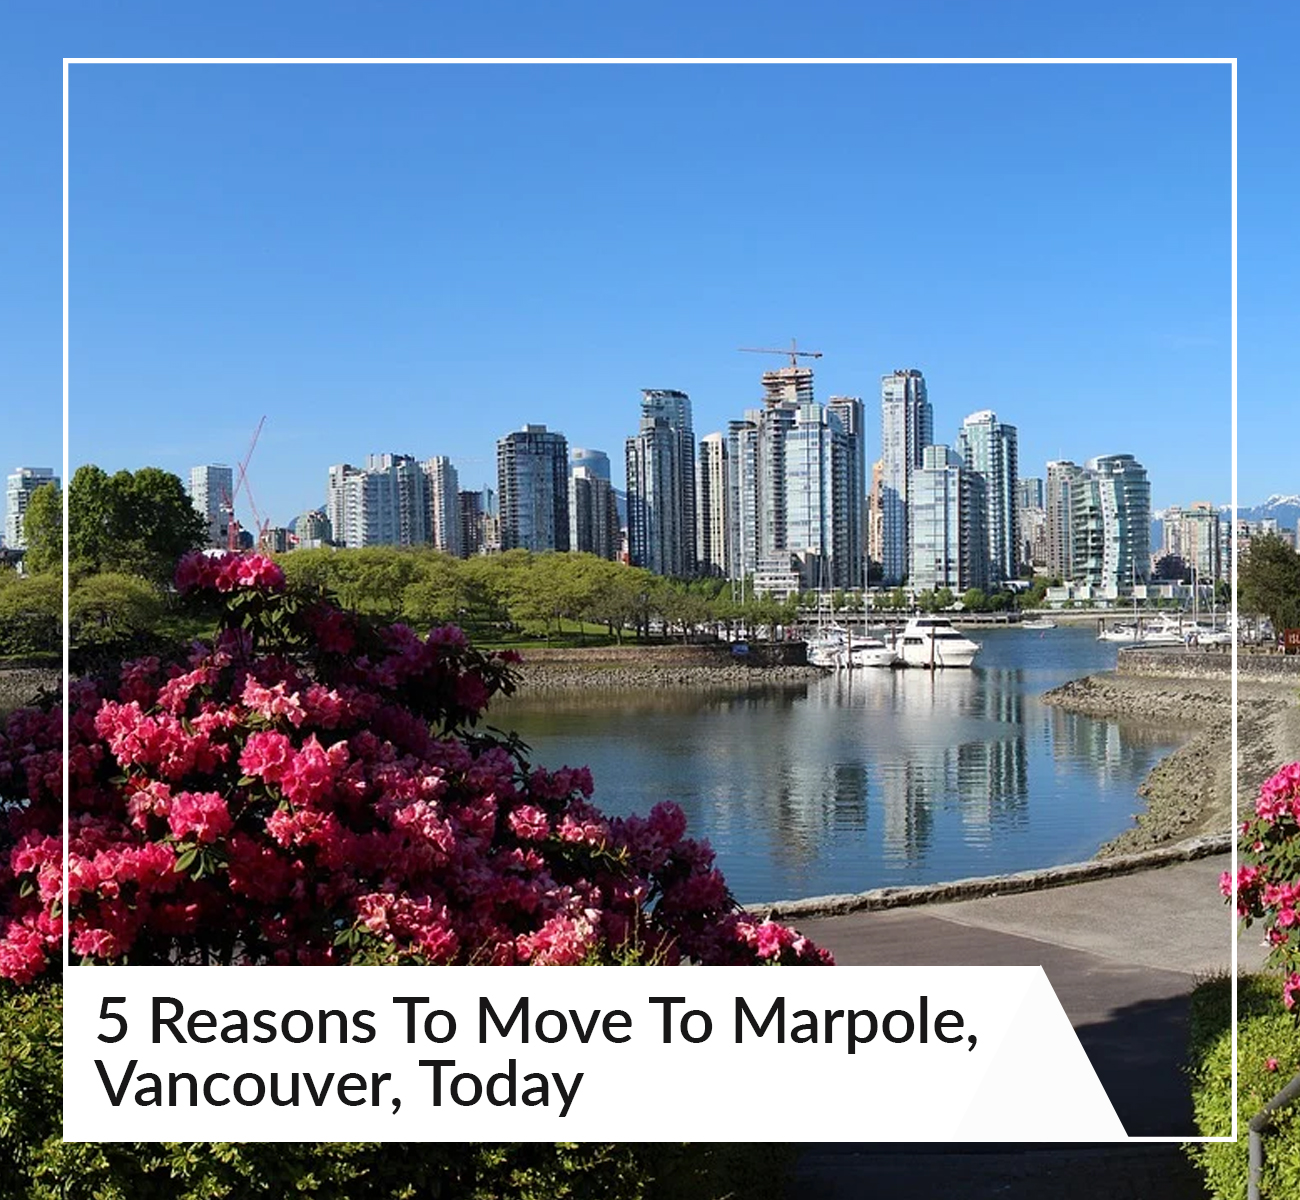 Moving to Marpole, Vancouver